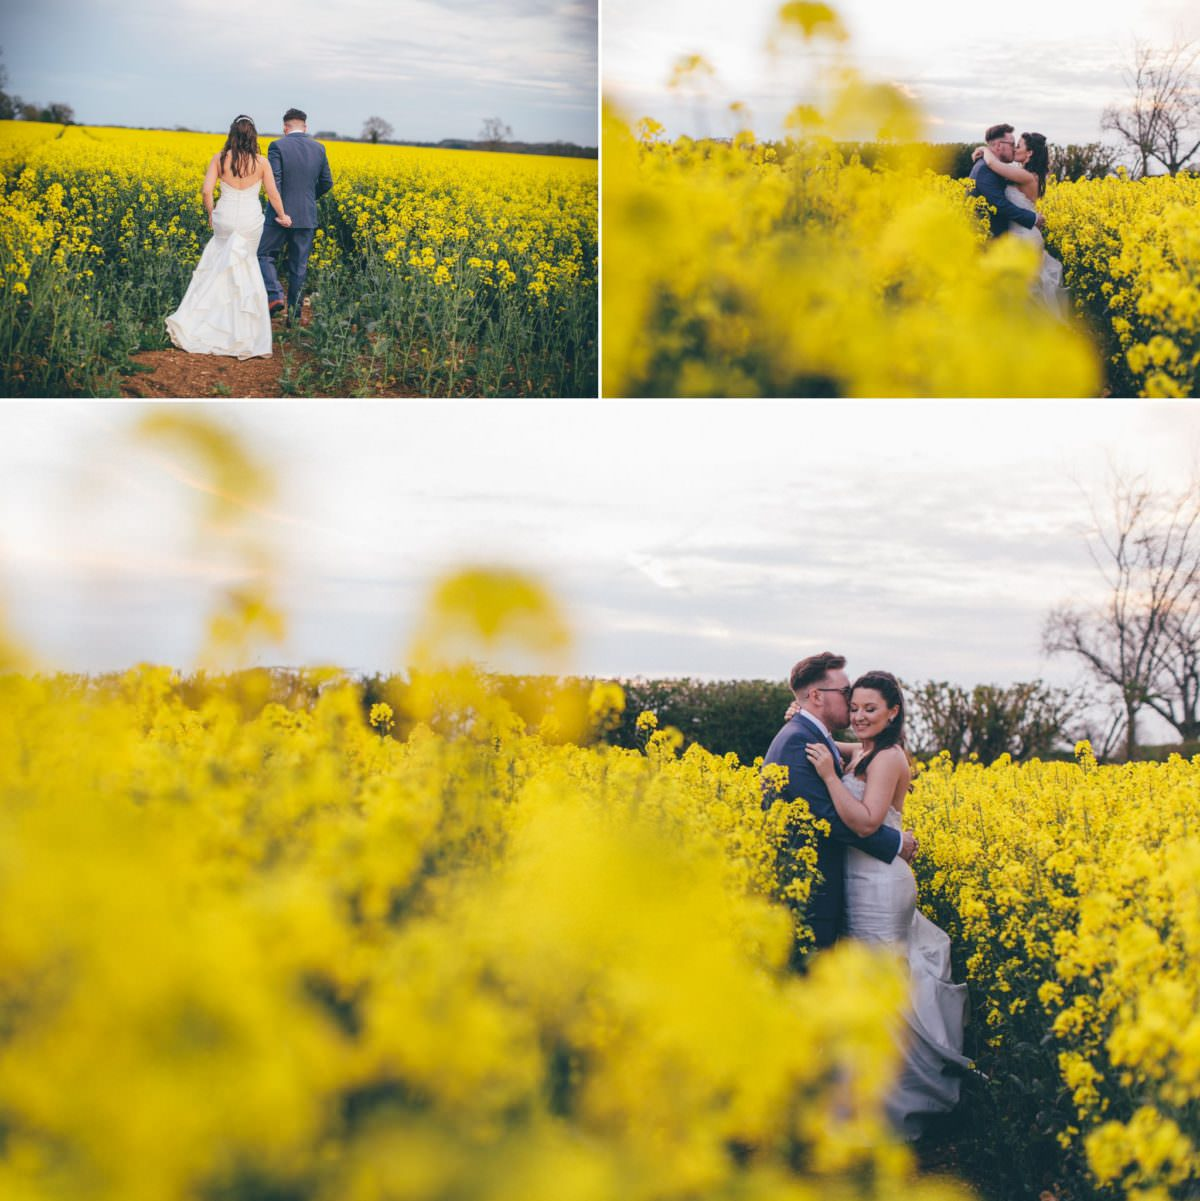 cripps_barn_gloucesterhsire_welsh_wedding_photographer_rachel_lambert_photography_jordan_amy_ 125